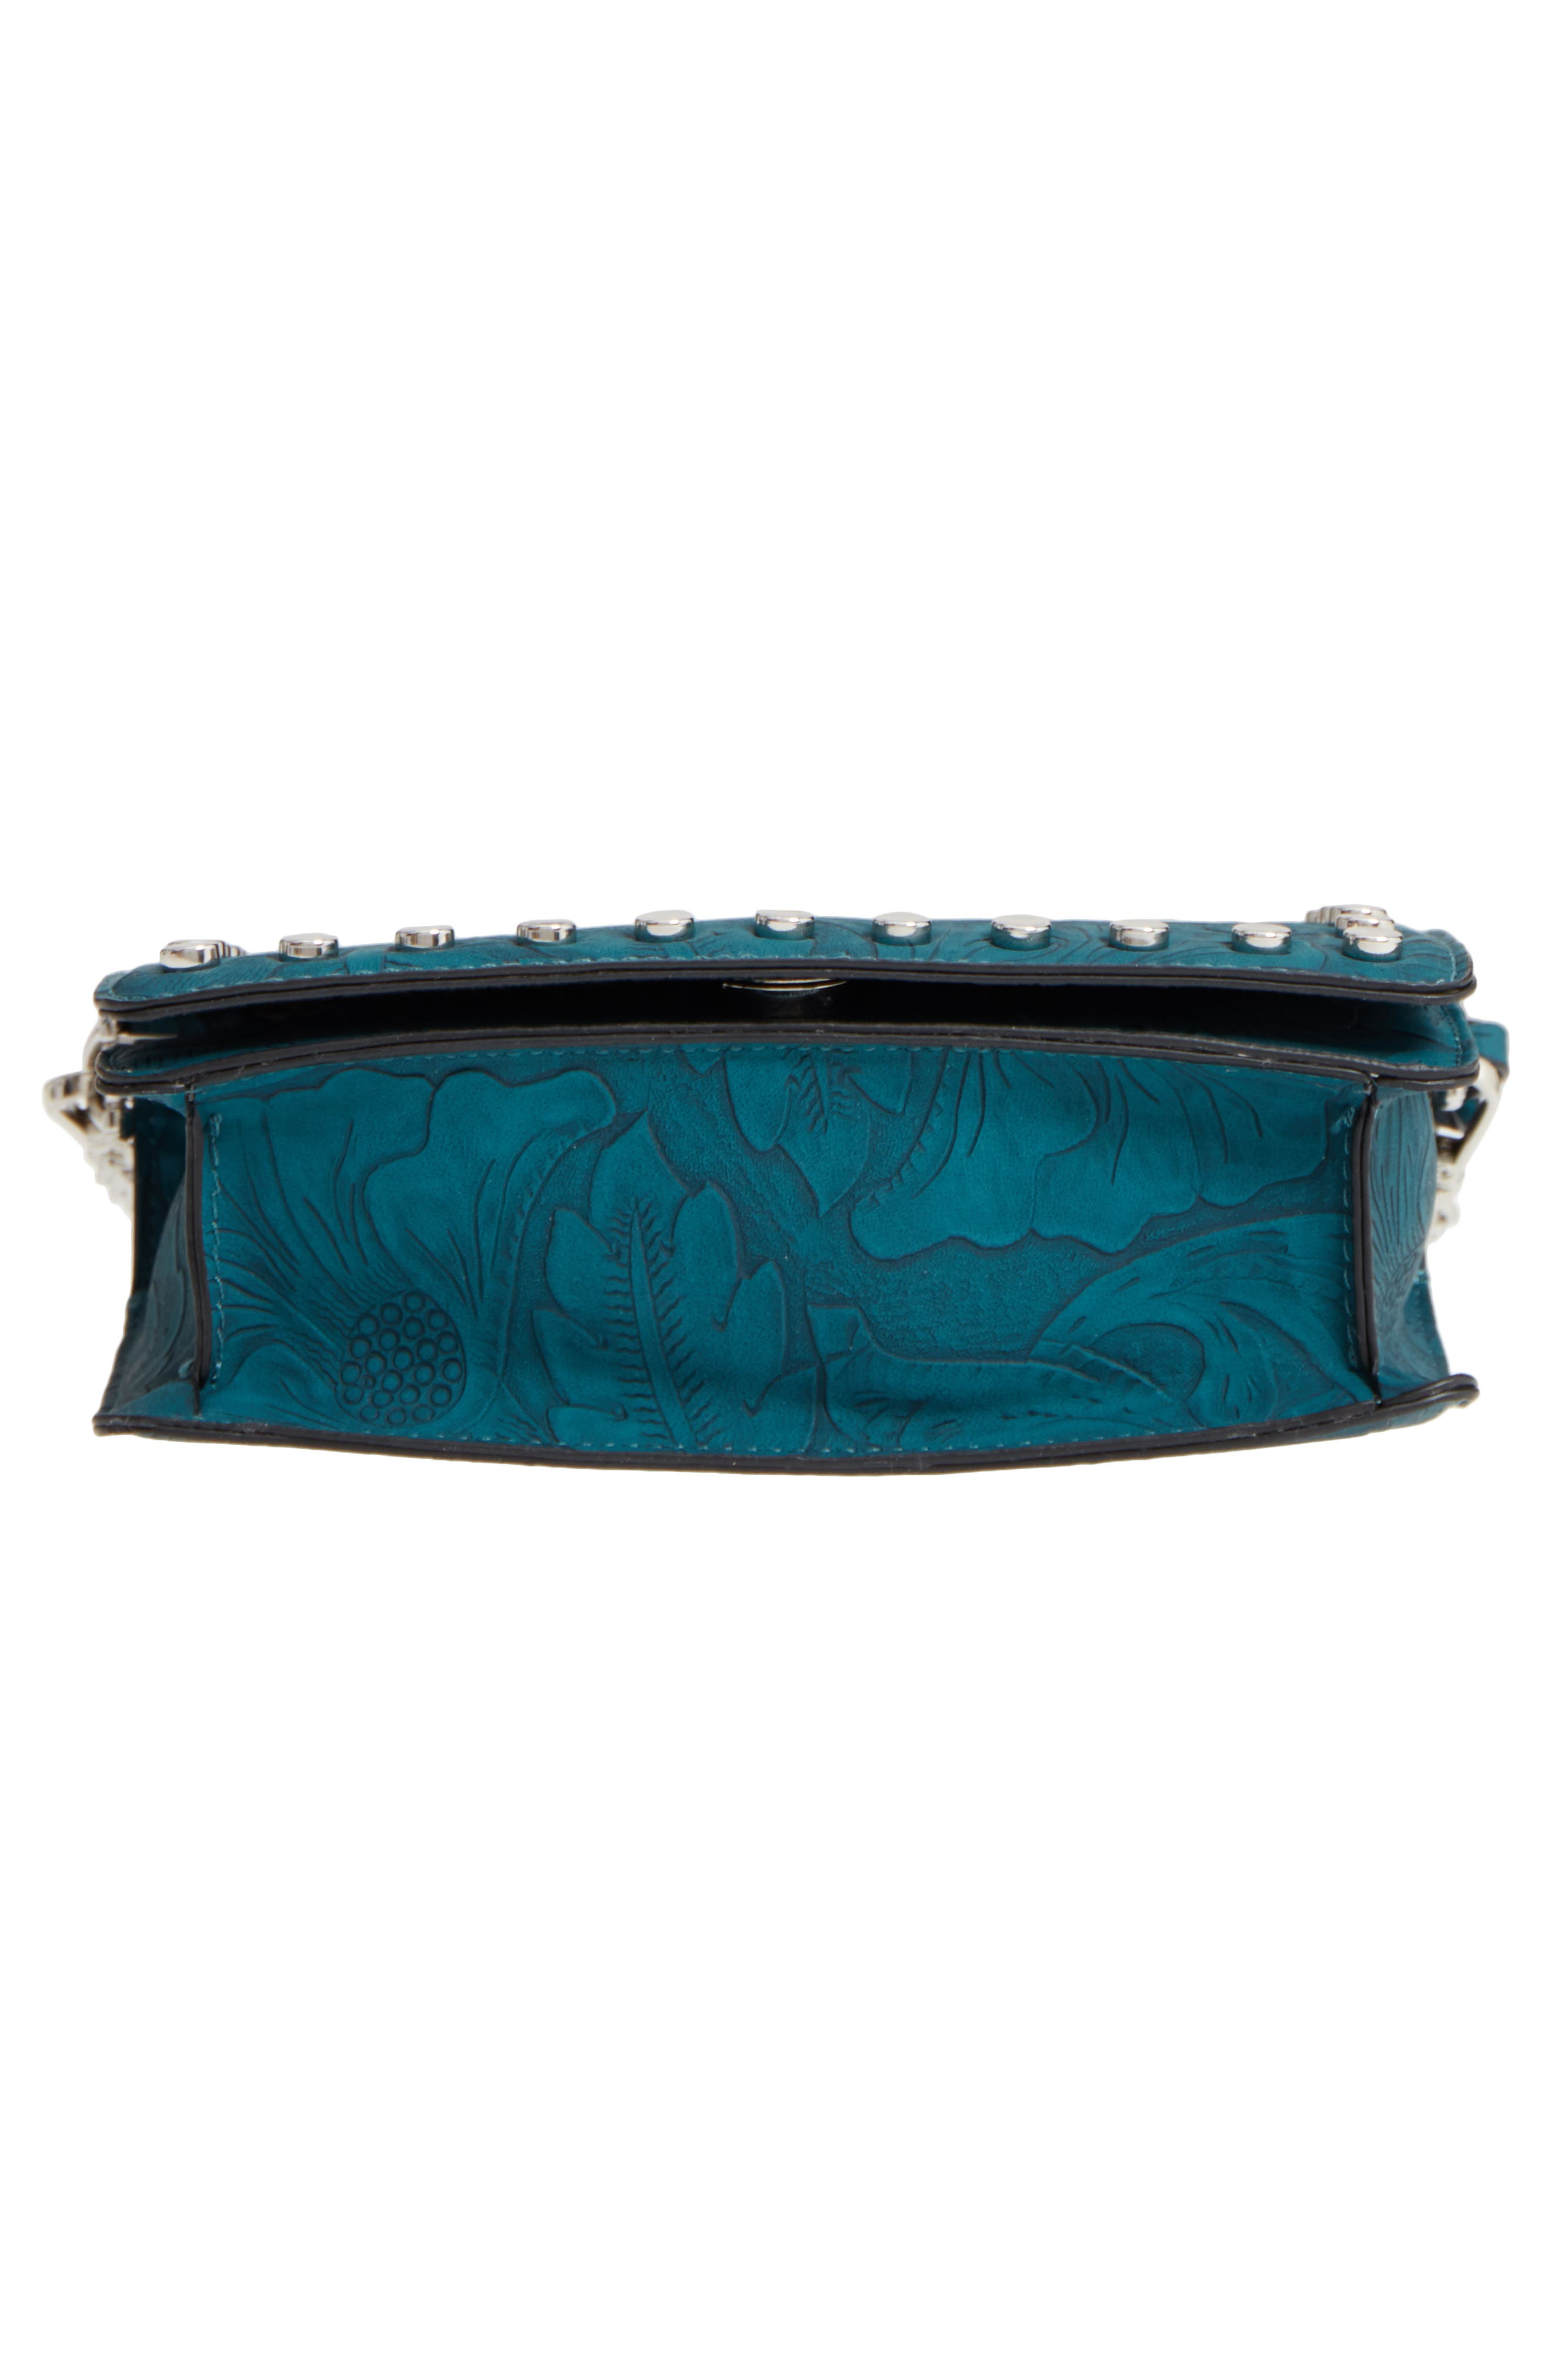 Hawna Faux Leather Crossbody,                             Alternate thumbnail 6, color,                             Teal